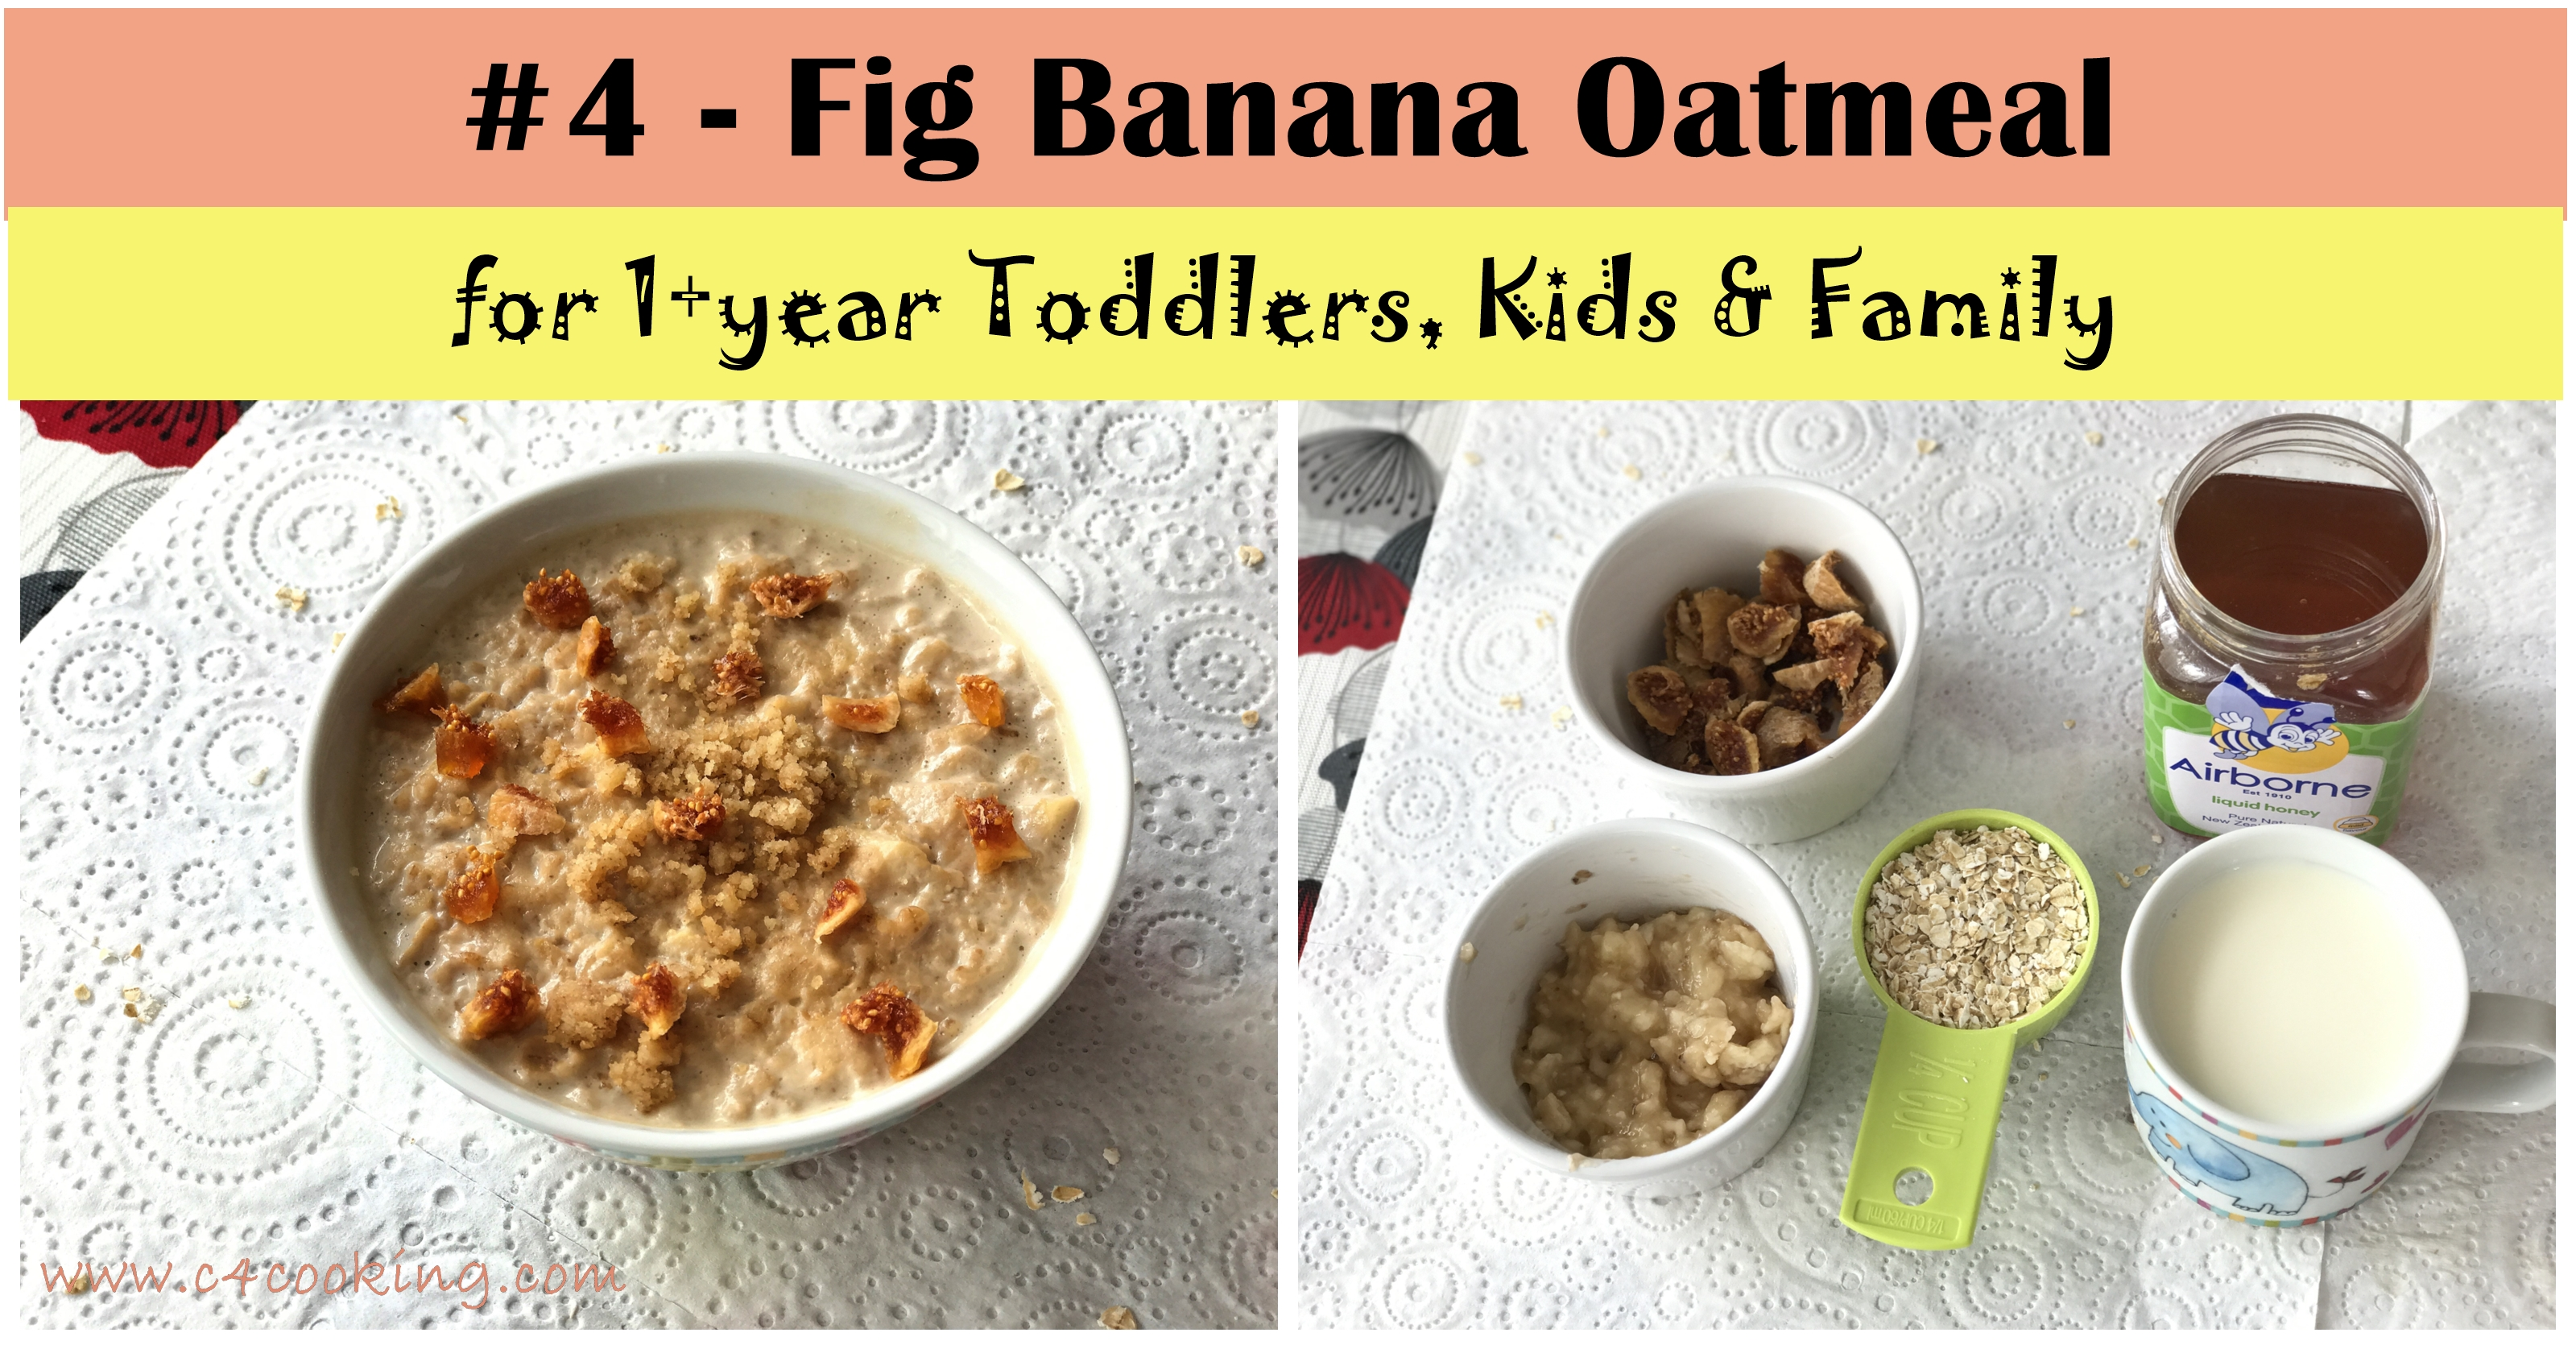 fig banana oatmeal recipe, overnight oatmeal recipes, 1year baby oatmeal recipes, kids oatmeal